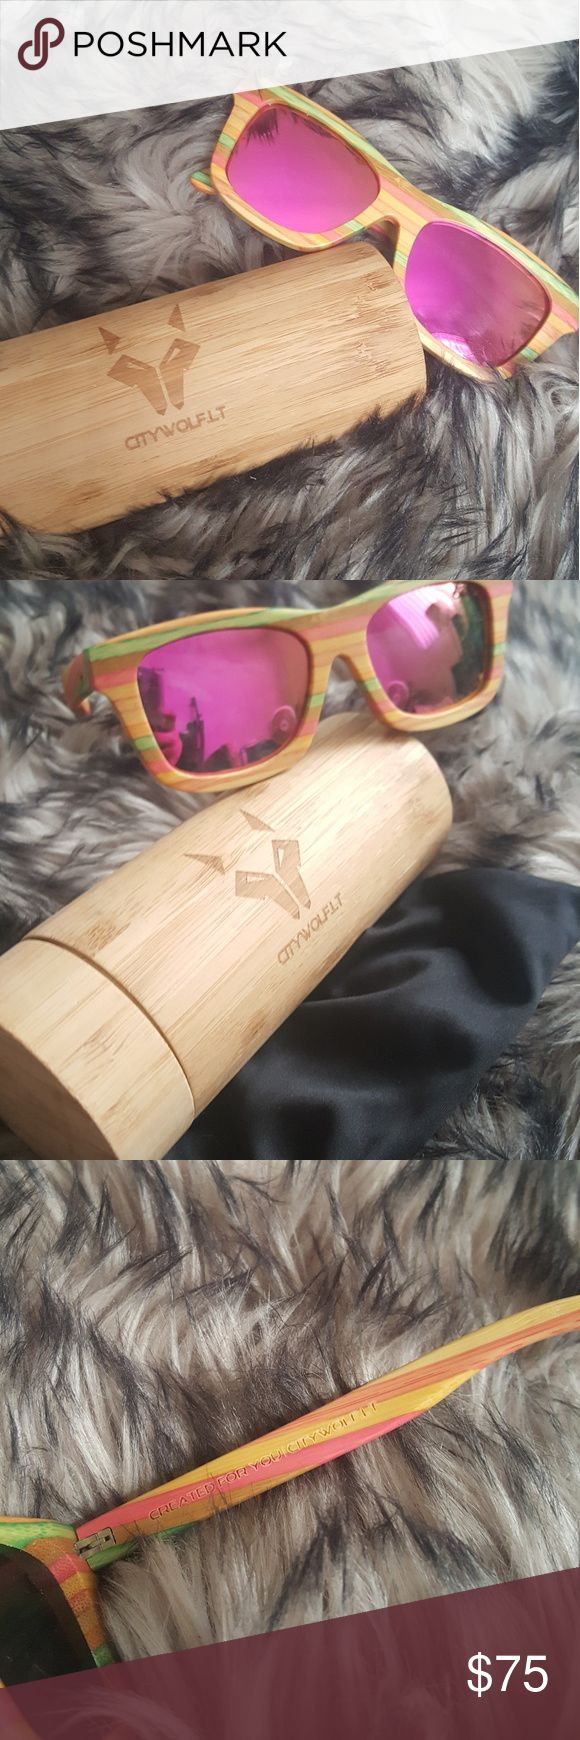 City Wolf Wayfarers Real bamboo wayfarer sunglasses Bought but never worn  Comes with cylindrical bamboo case and dust bag Style no longer being sold Accessories Sunglasses